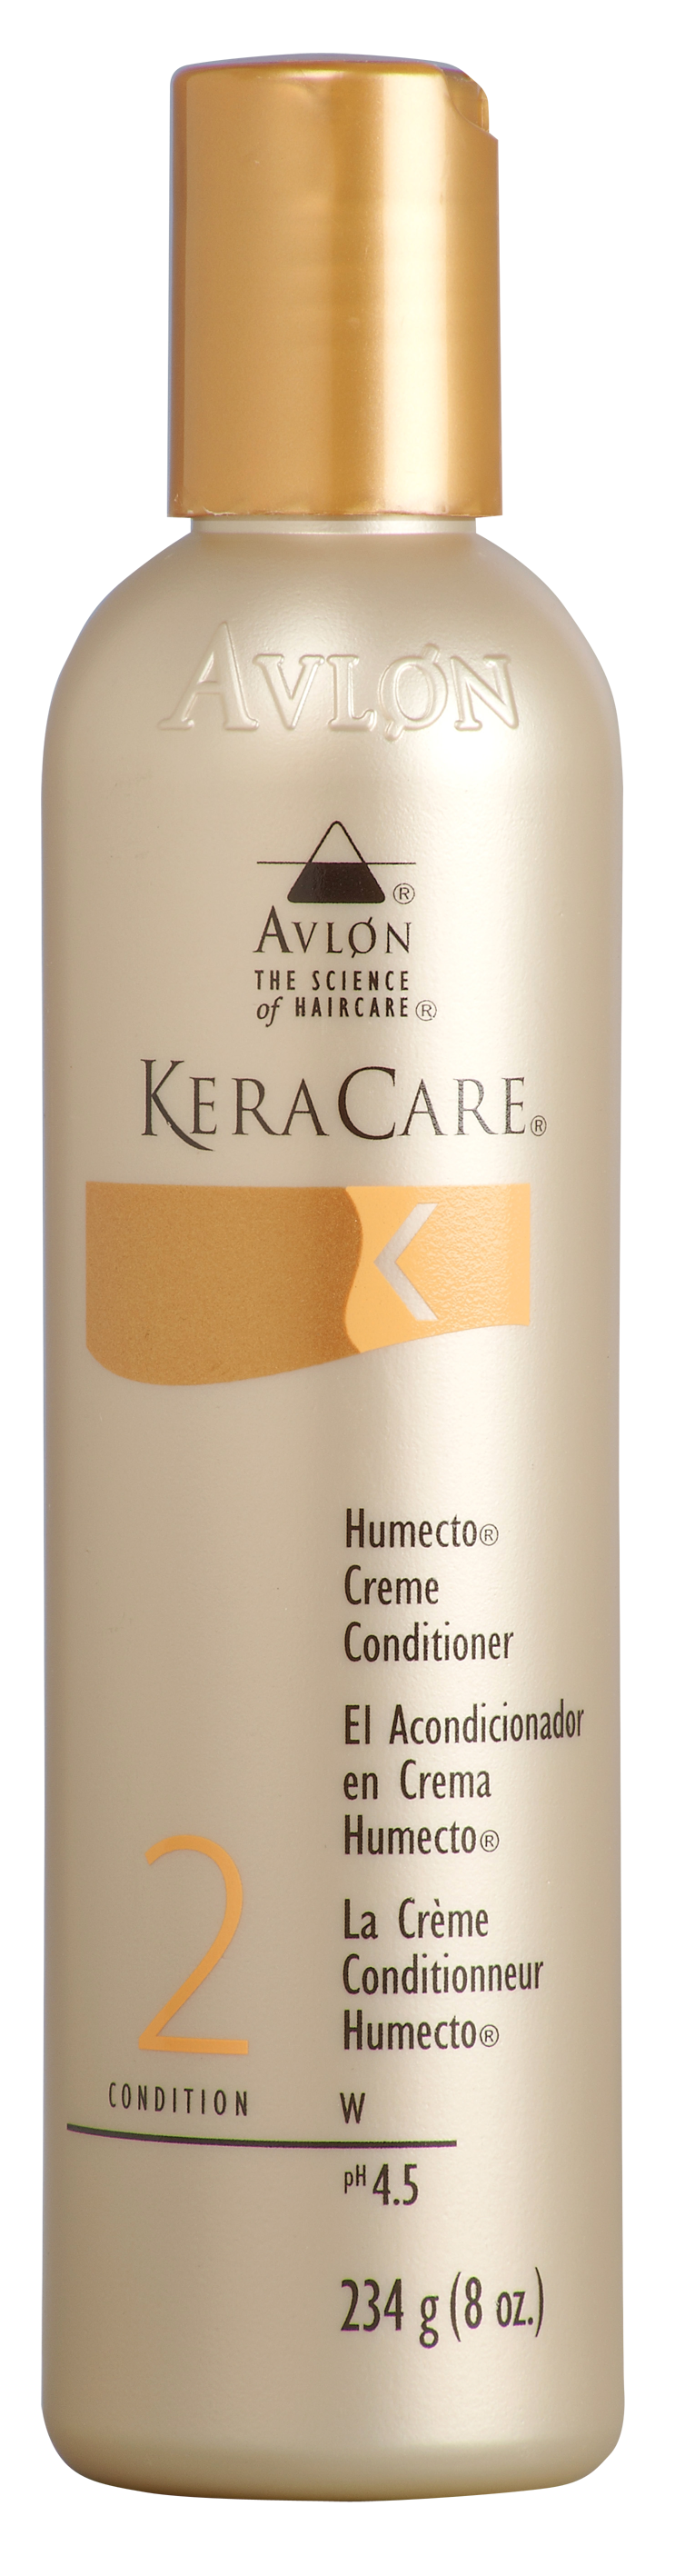 KeraCare® Humecto Creme Conditioner